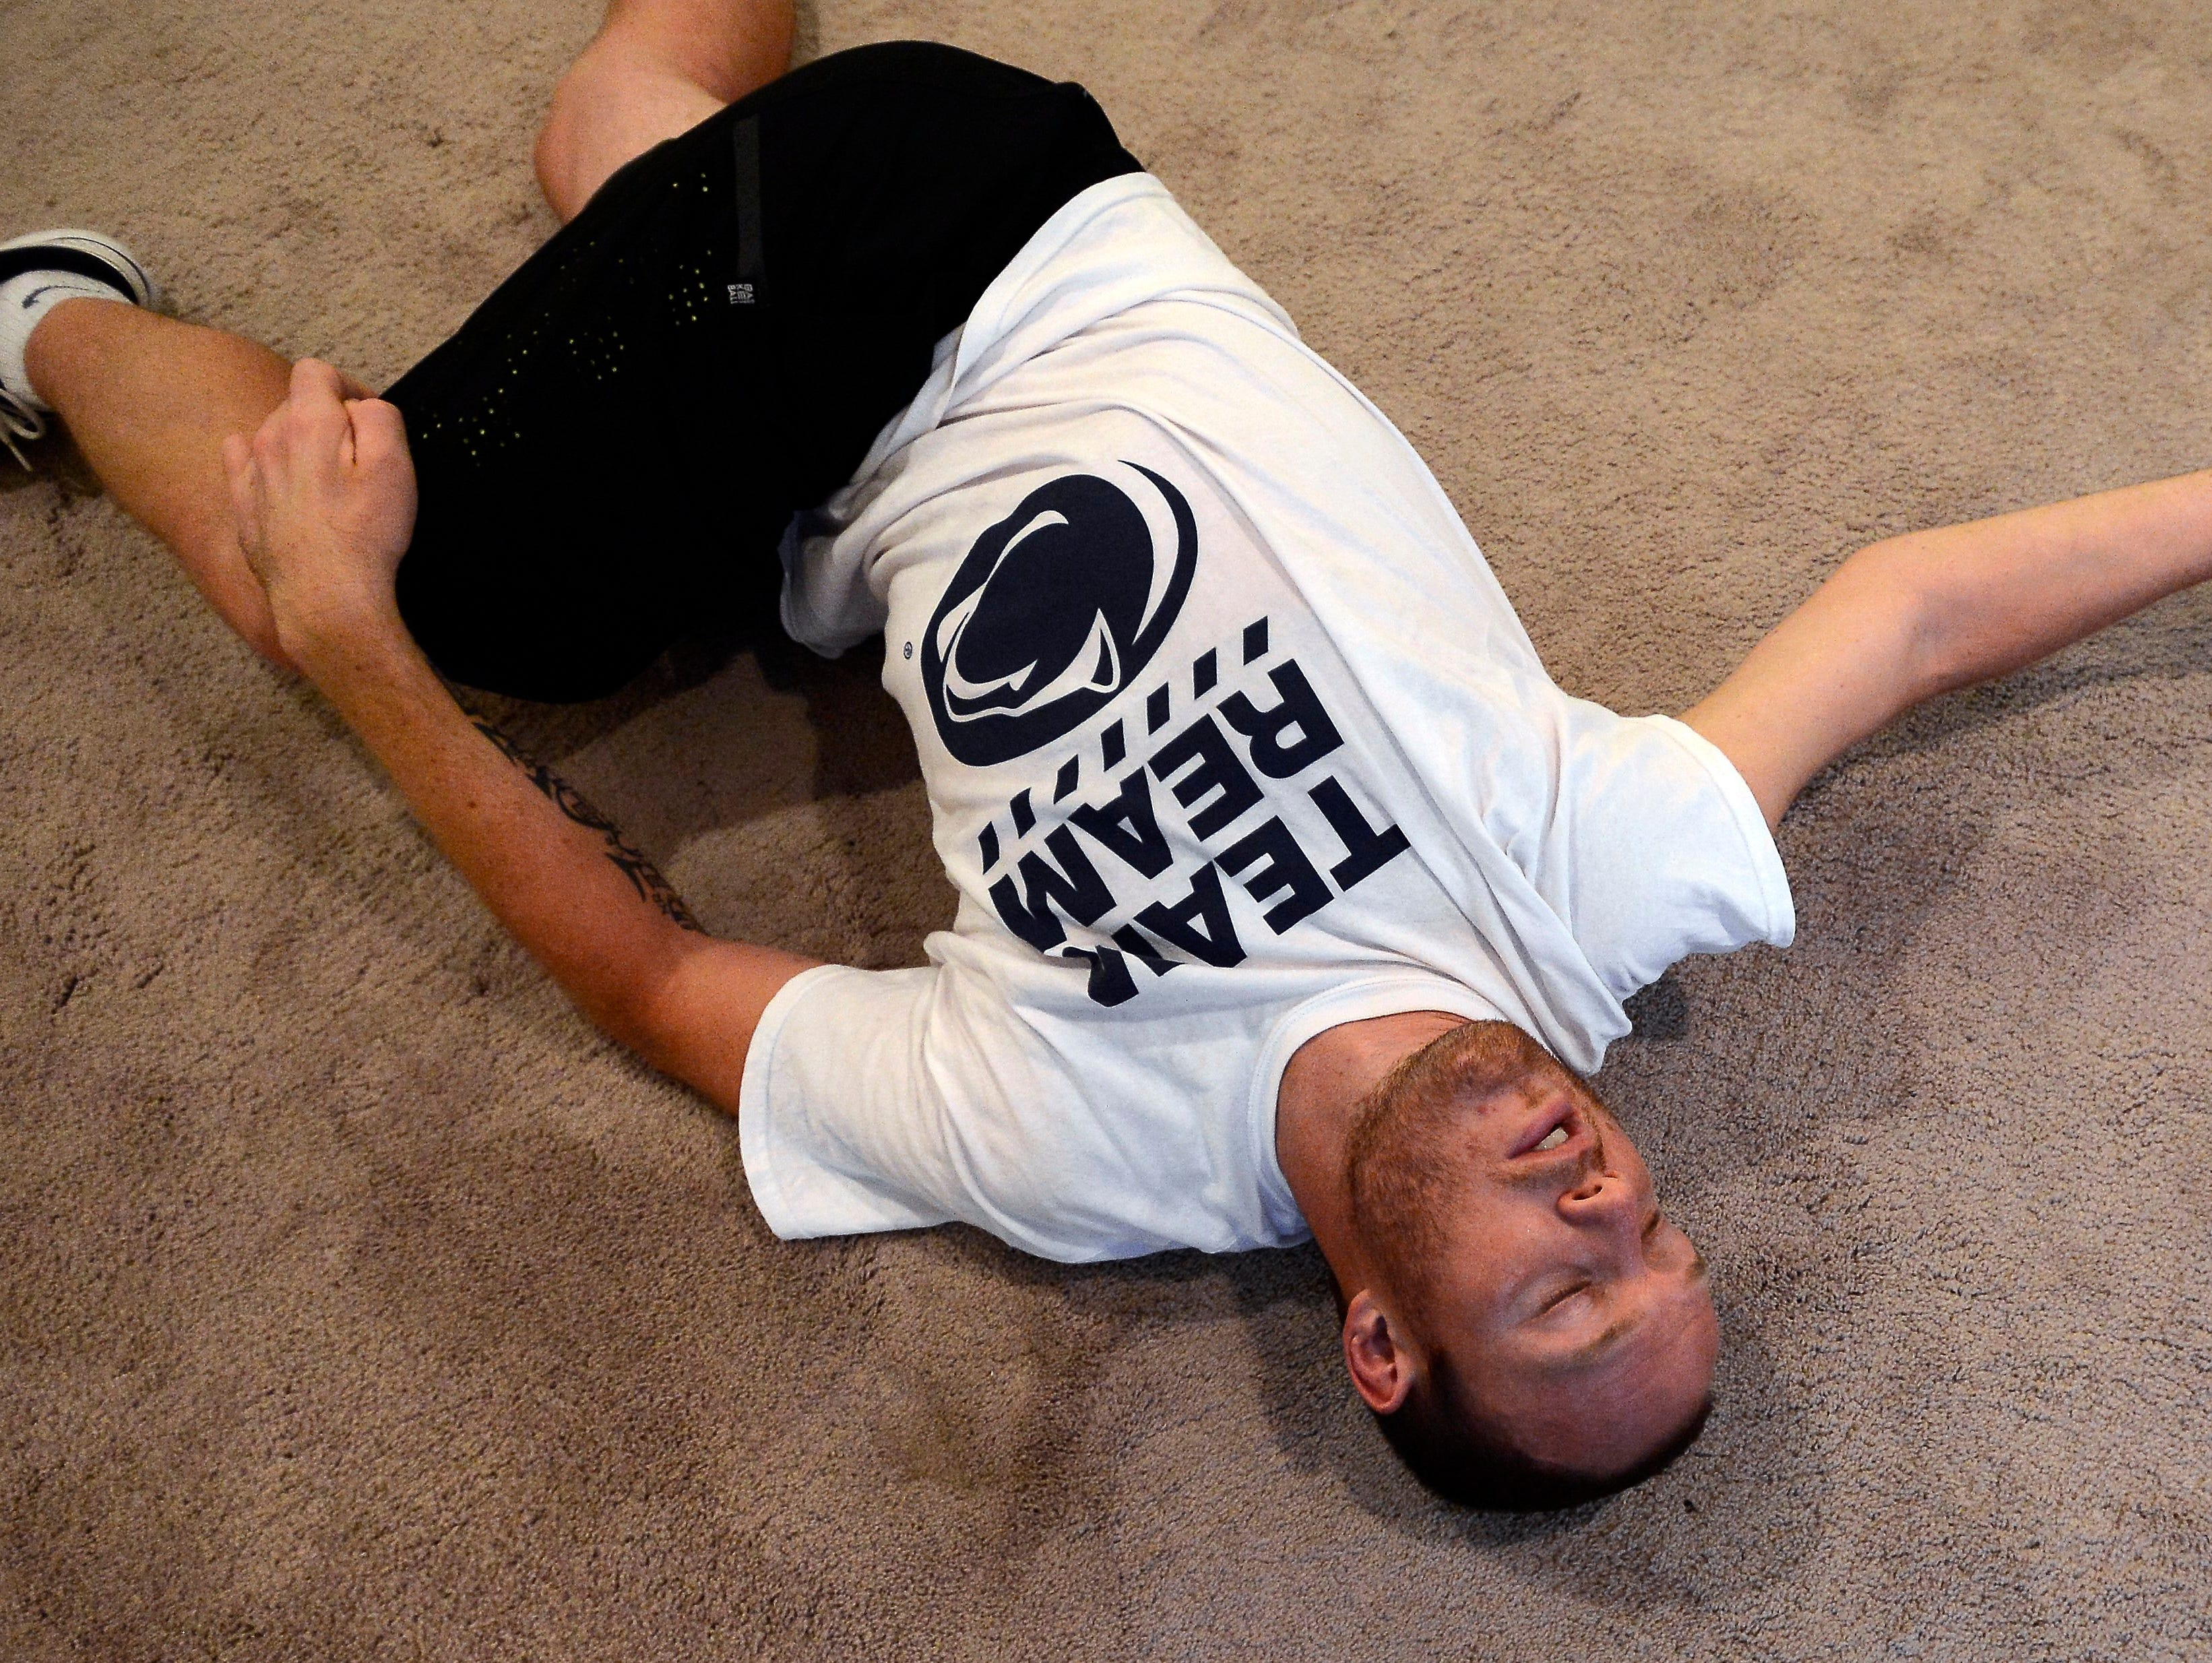 Tim Shaw stretches at the end of his workout on Tuesday in Nashville Tenn.